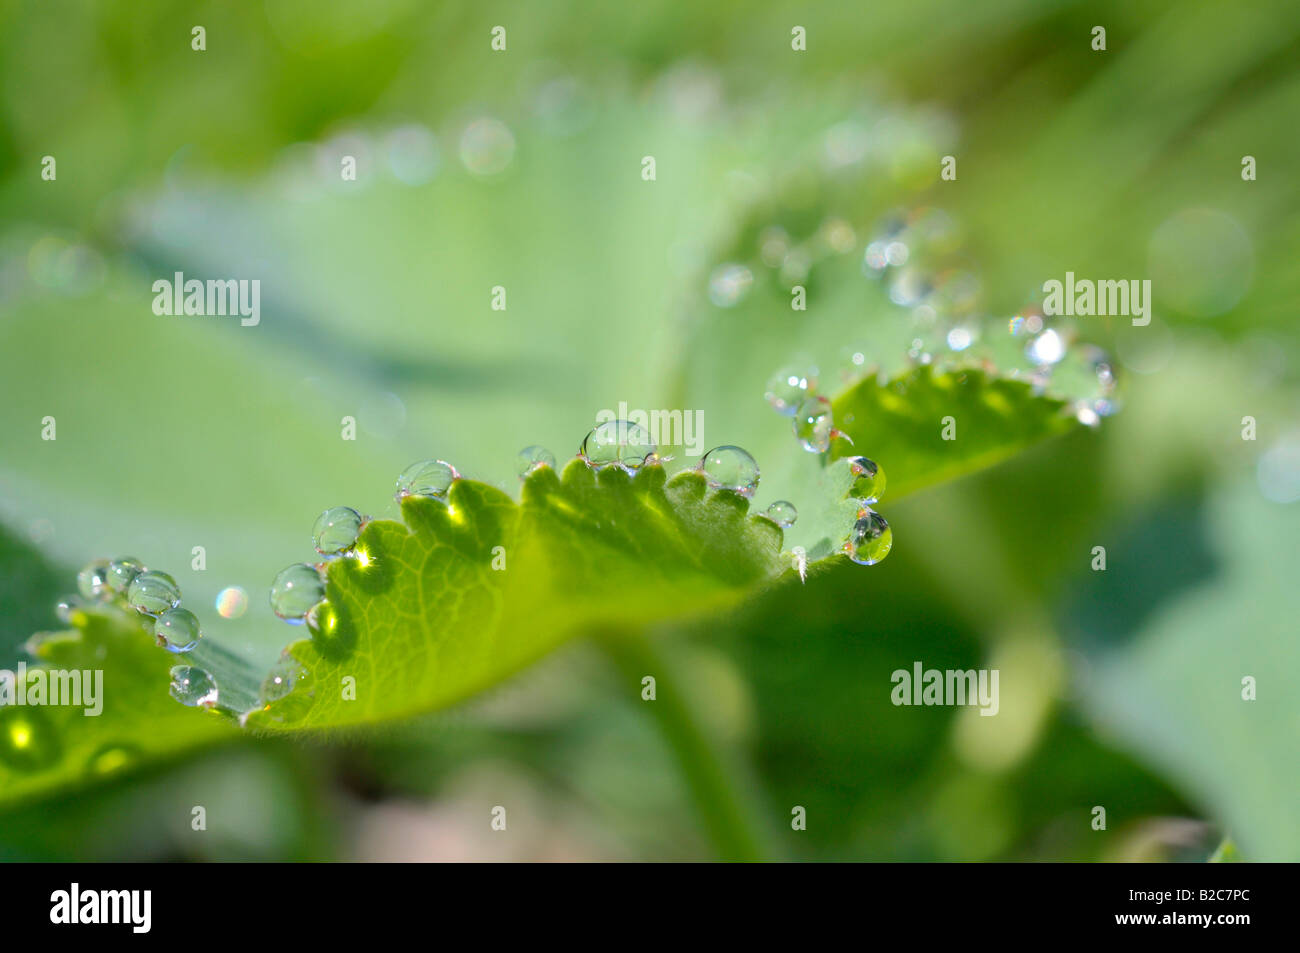 Drops of water on the leaf of a Lady's Mantle (Alchemilla) Stock Photo